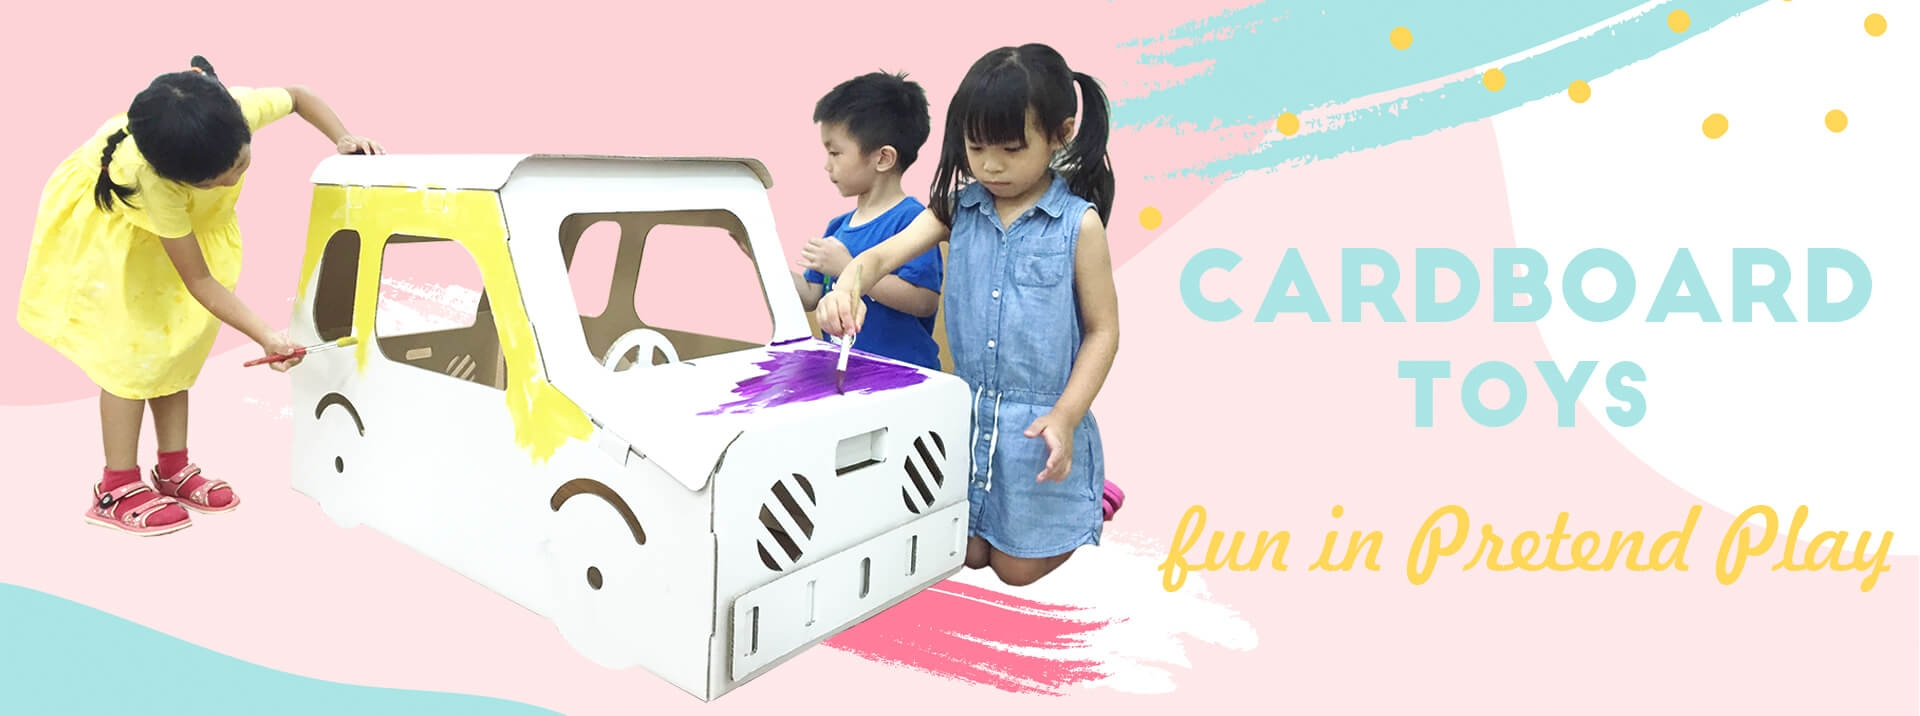 cardboard toys, playhouse